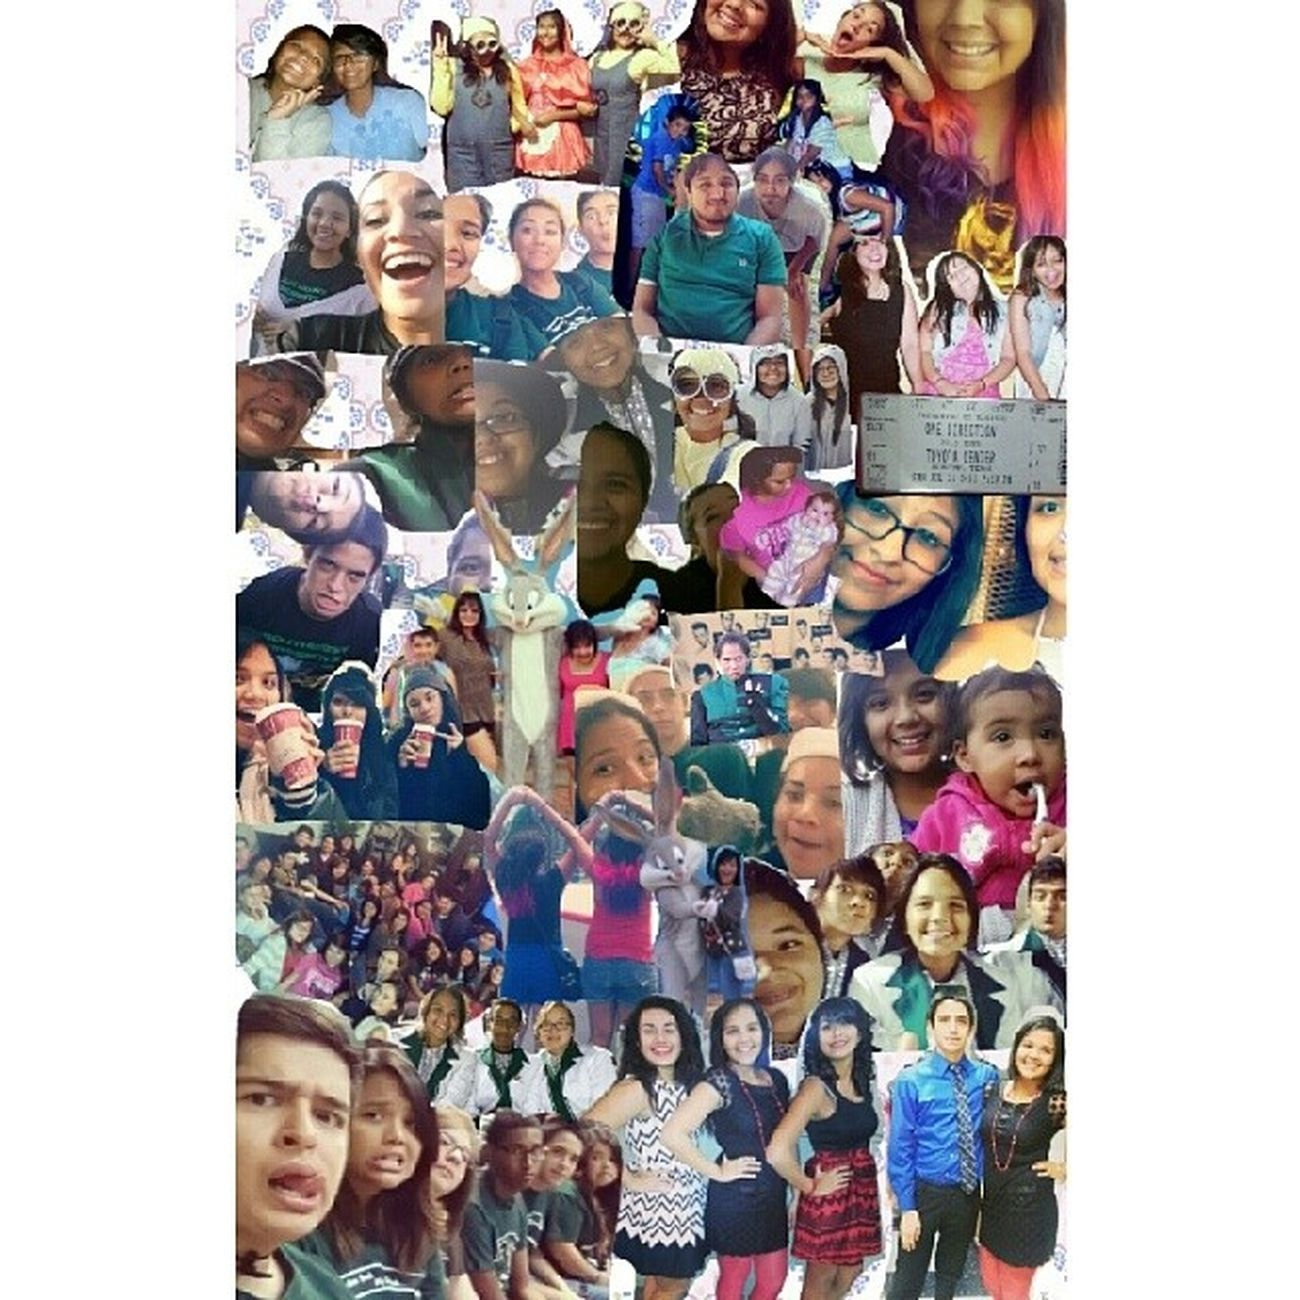 Bestof2013 , It might have not been the best year, but I sure did have a lot of fun, From my 16th birthday to breaking once again another phone & having four dogs, Winning one direction tickets the week of the concert, having to much fun at six flags. All the football games & marching competition, Finally Getting a new phone, Having fun with my band family :b & so much more ♡